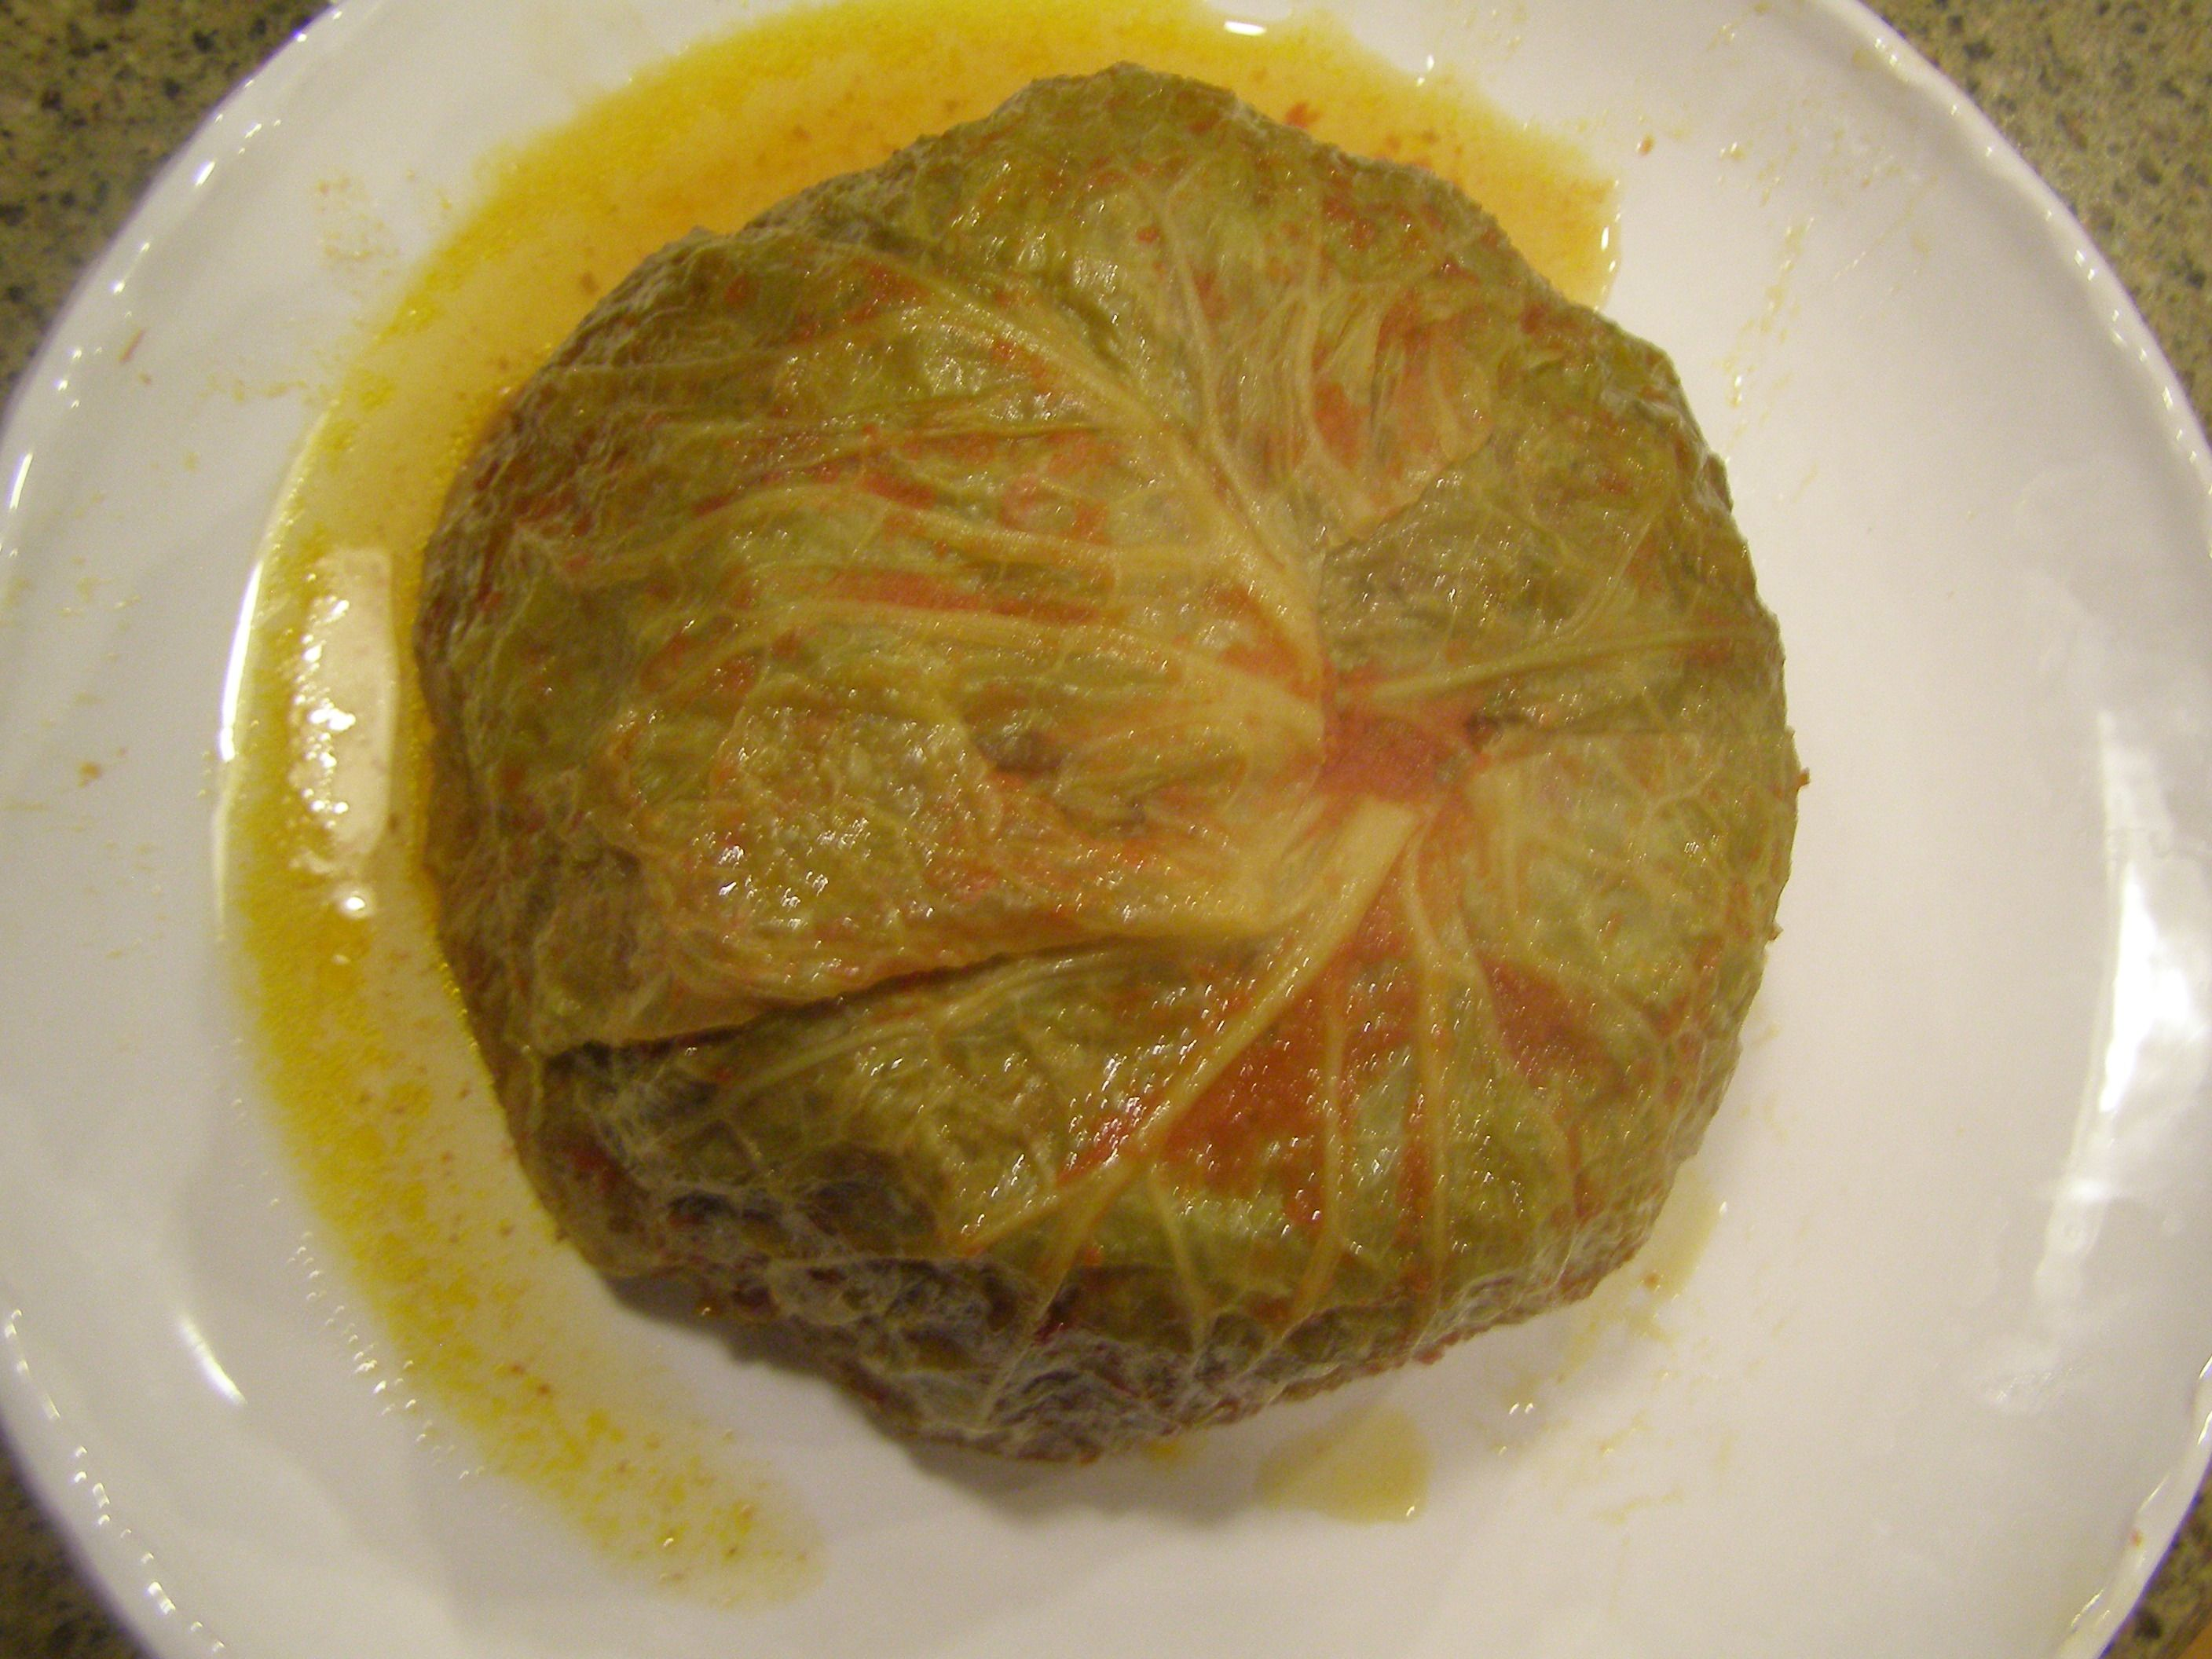 Chou farci stuffed whole cabbage french cooking pinterest food forumfinder Gallery